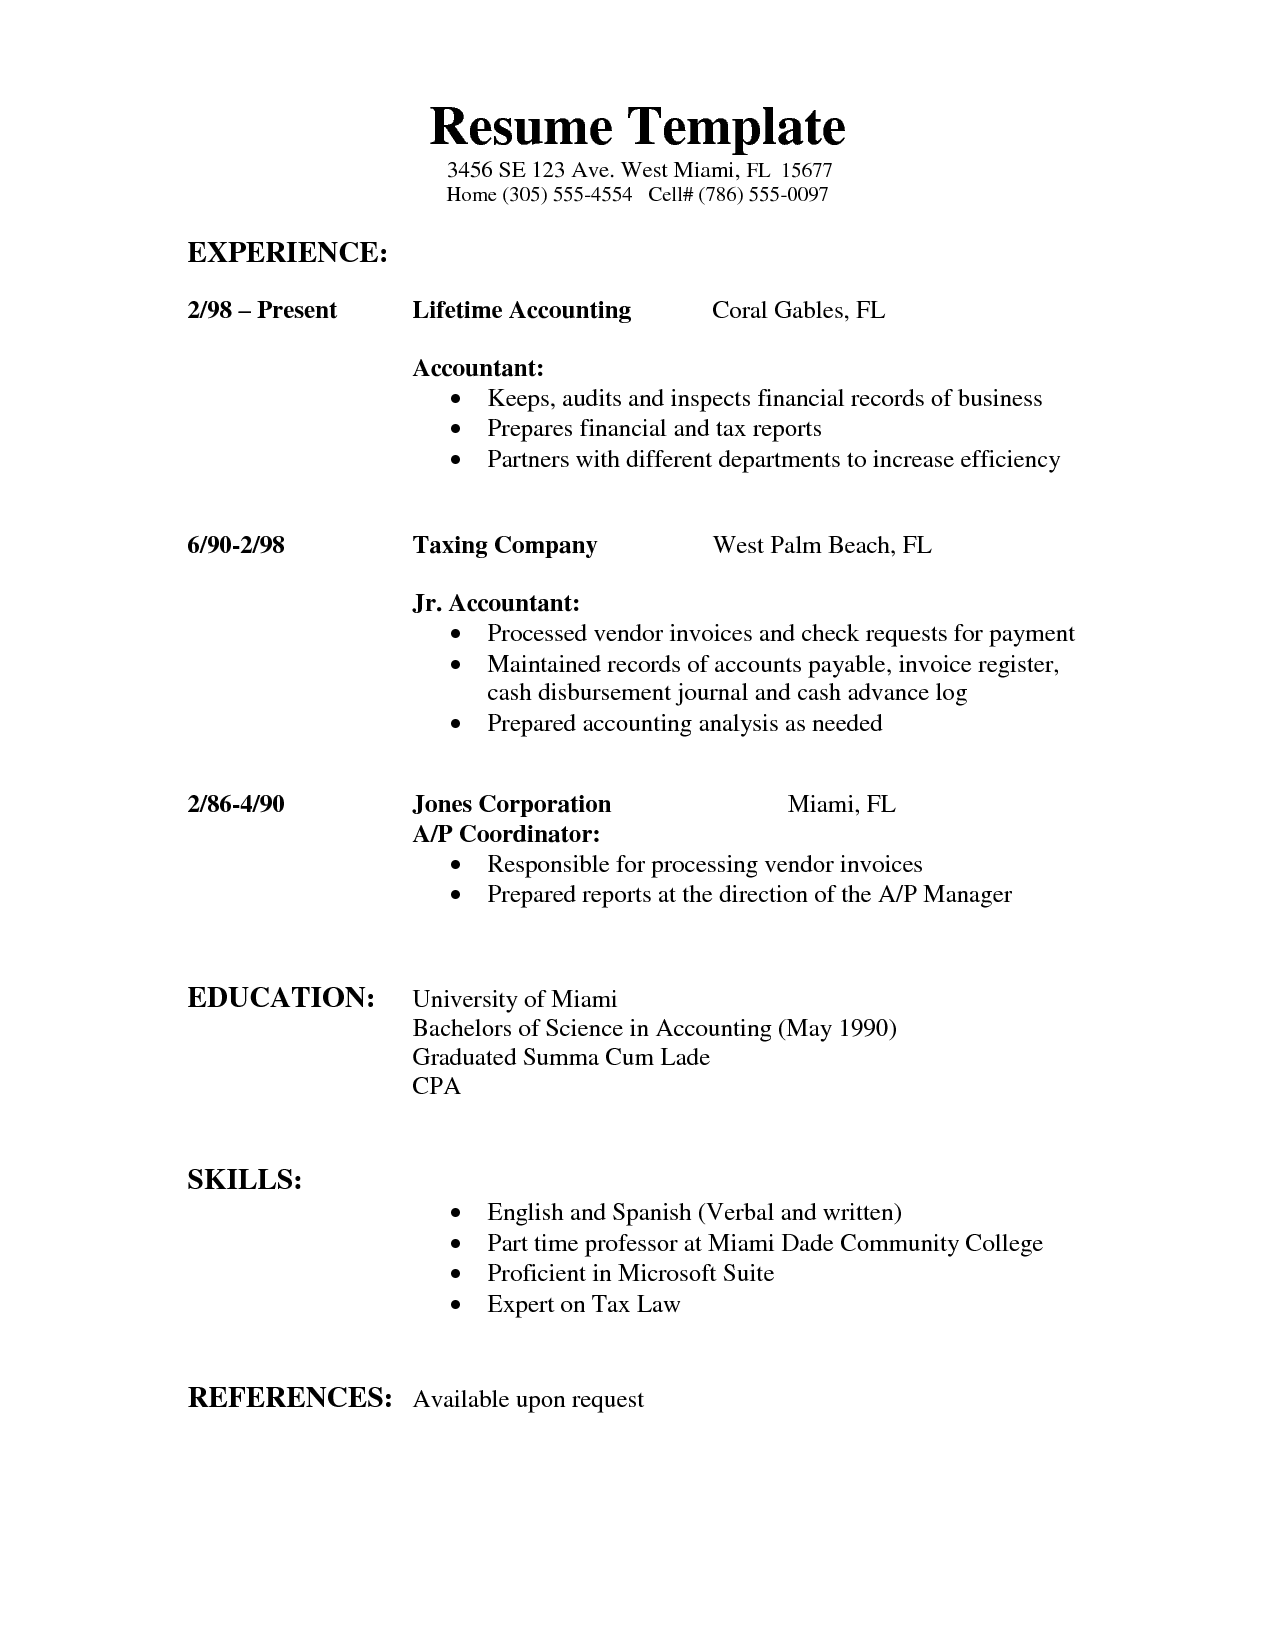 resume templates examples anuvrat info microsoft office online resume templates resume samples word